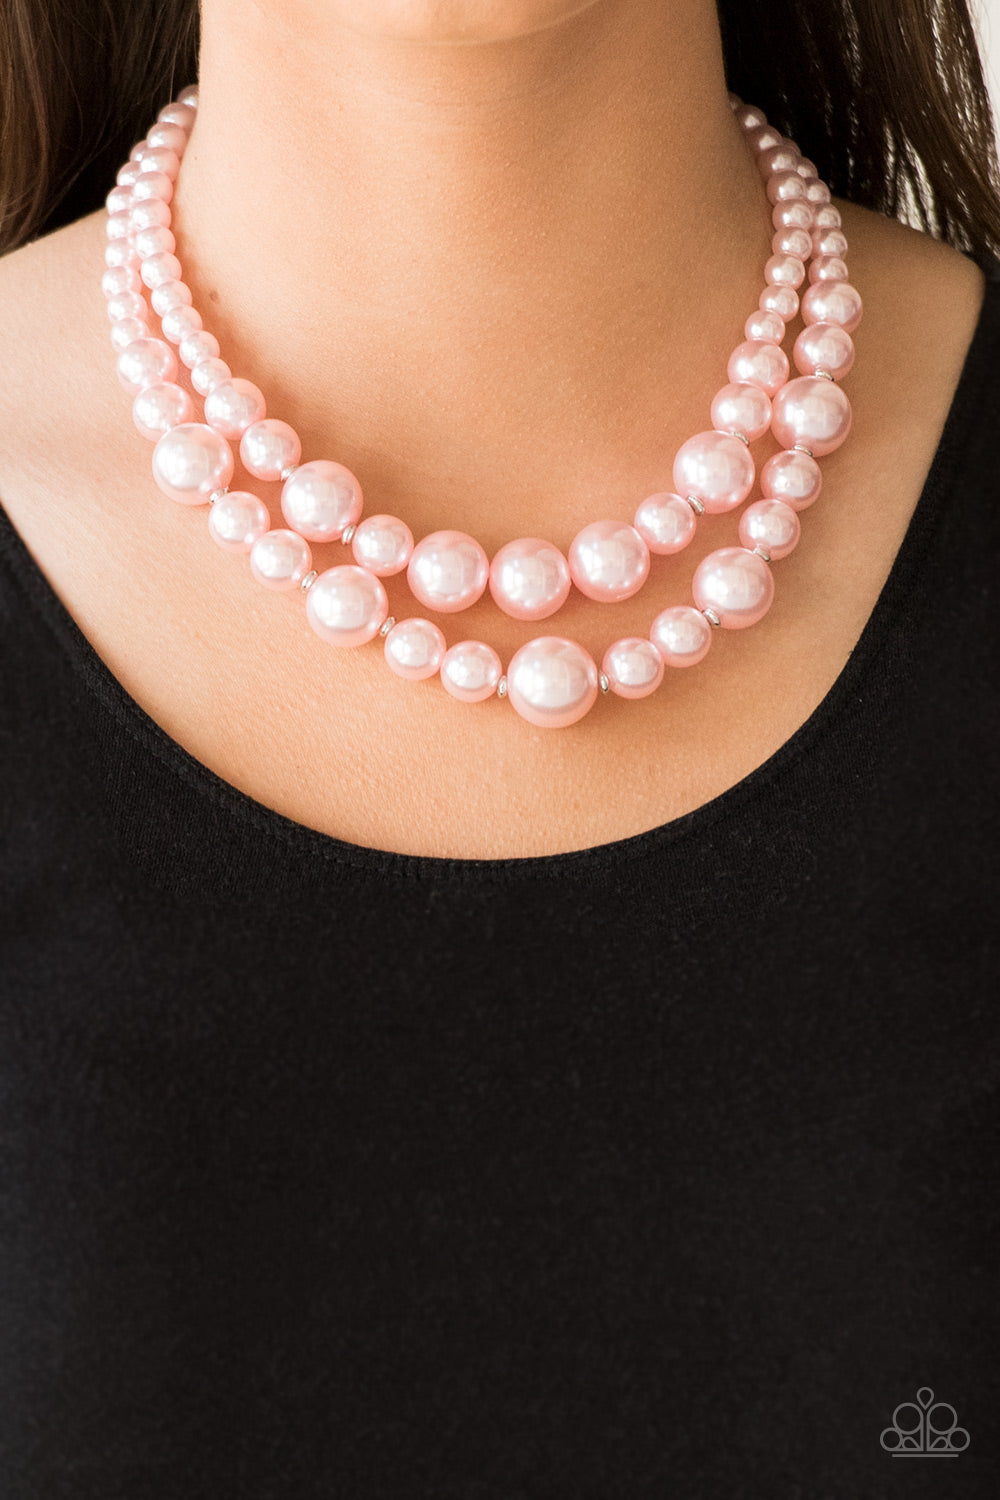 Paparazzi - The More The Modest - Pink Necklace Set - Classy Jewels by Linda